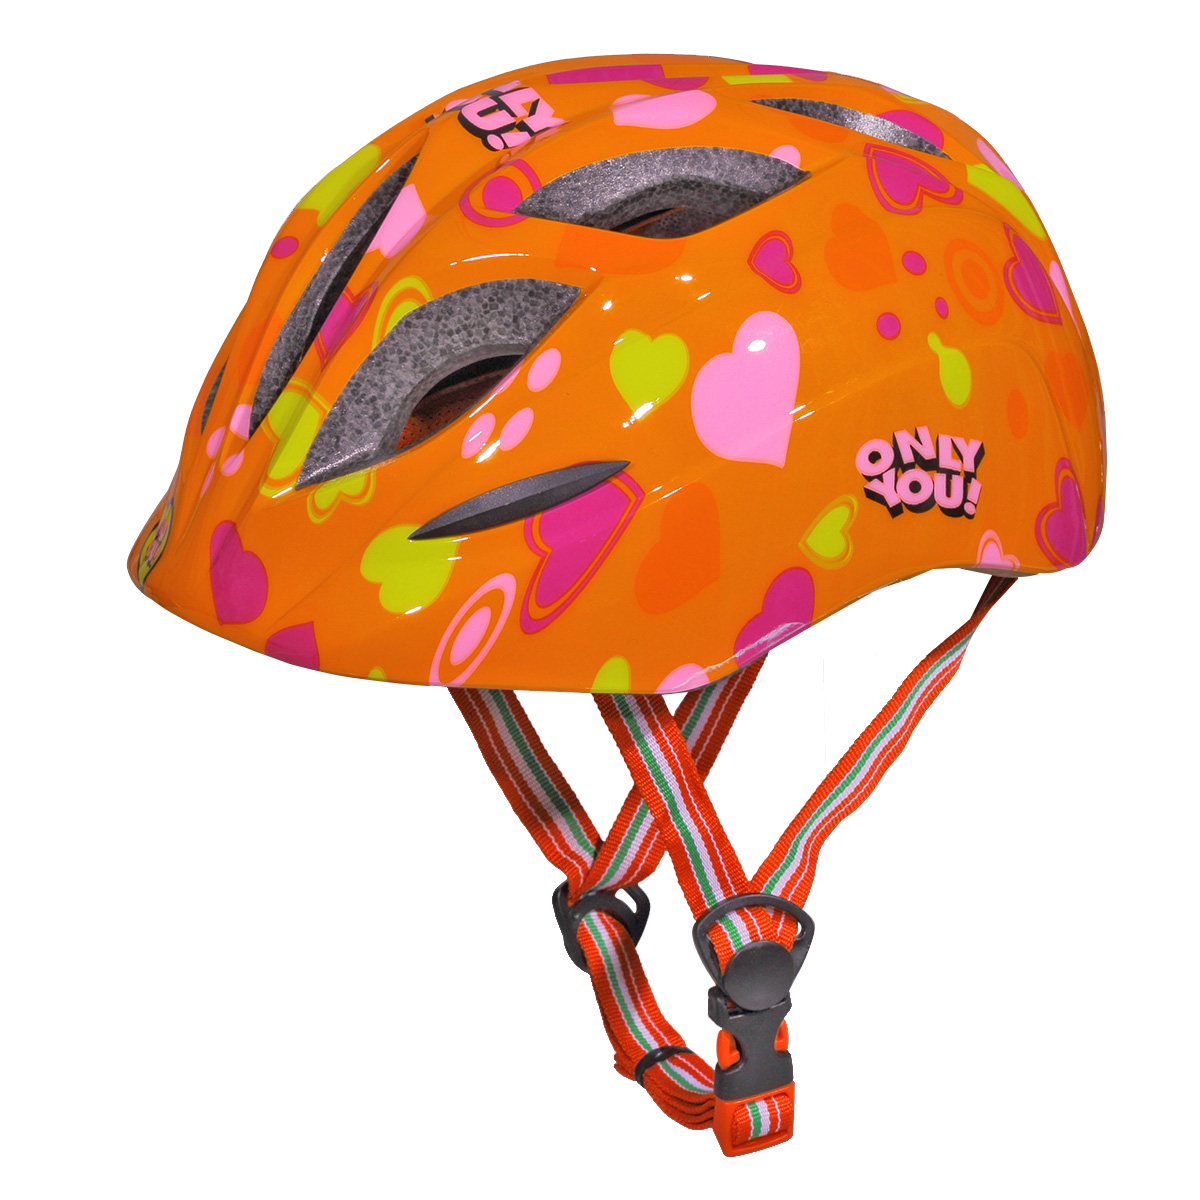 CoastaCloud Kids Cycling Helmet with Adjustable Headband for a Safer Fit, an Ideal First Helmet